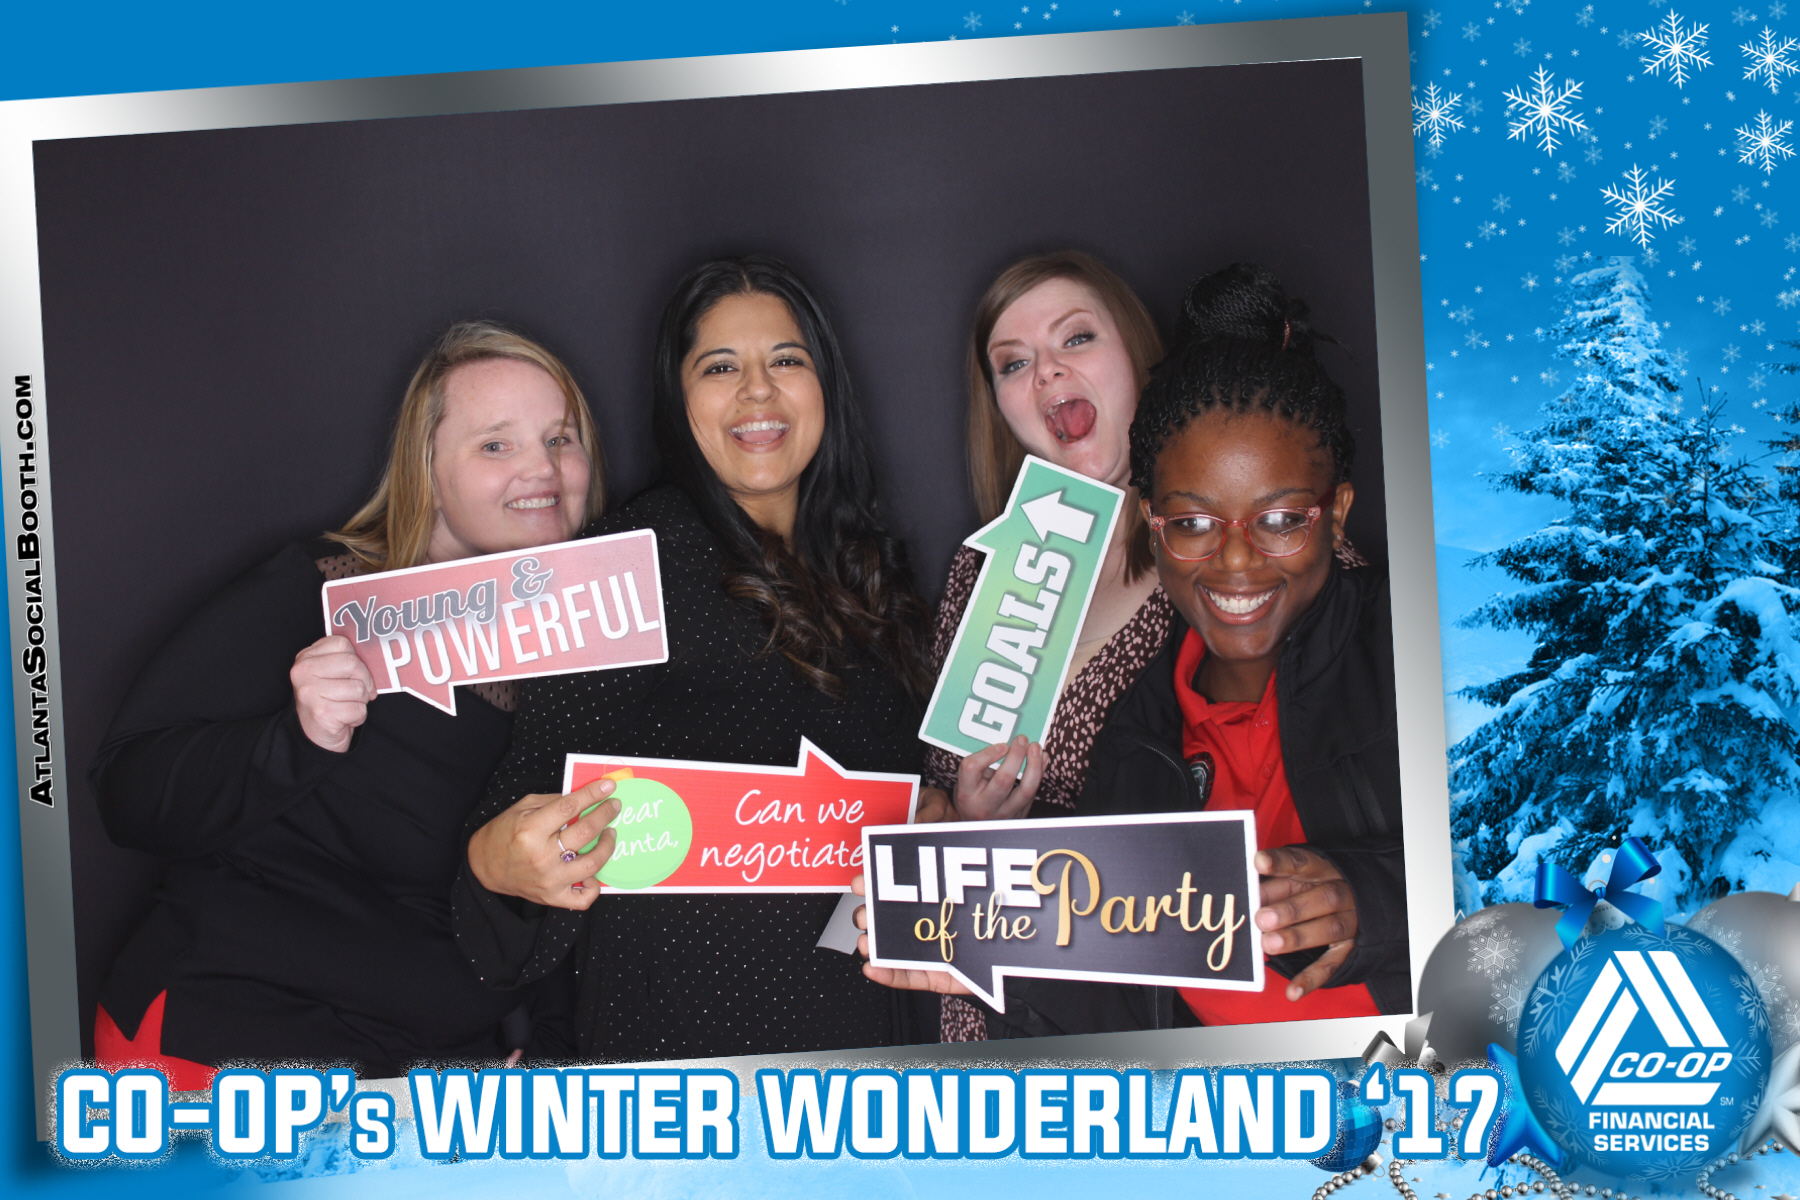 CO-OP Winter Wonderland